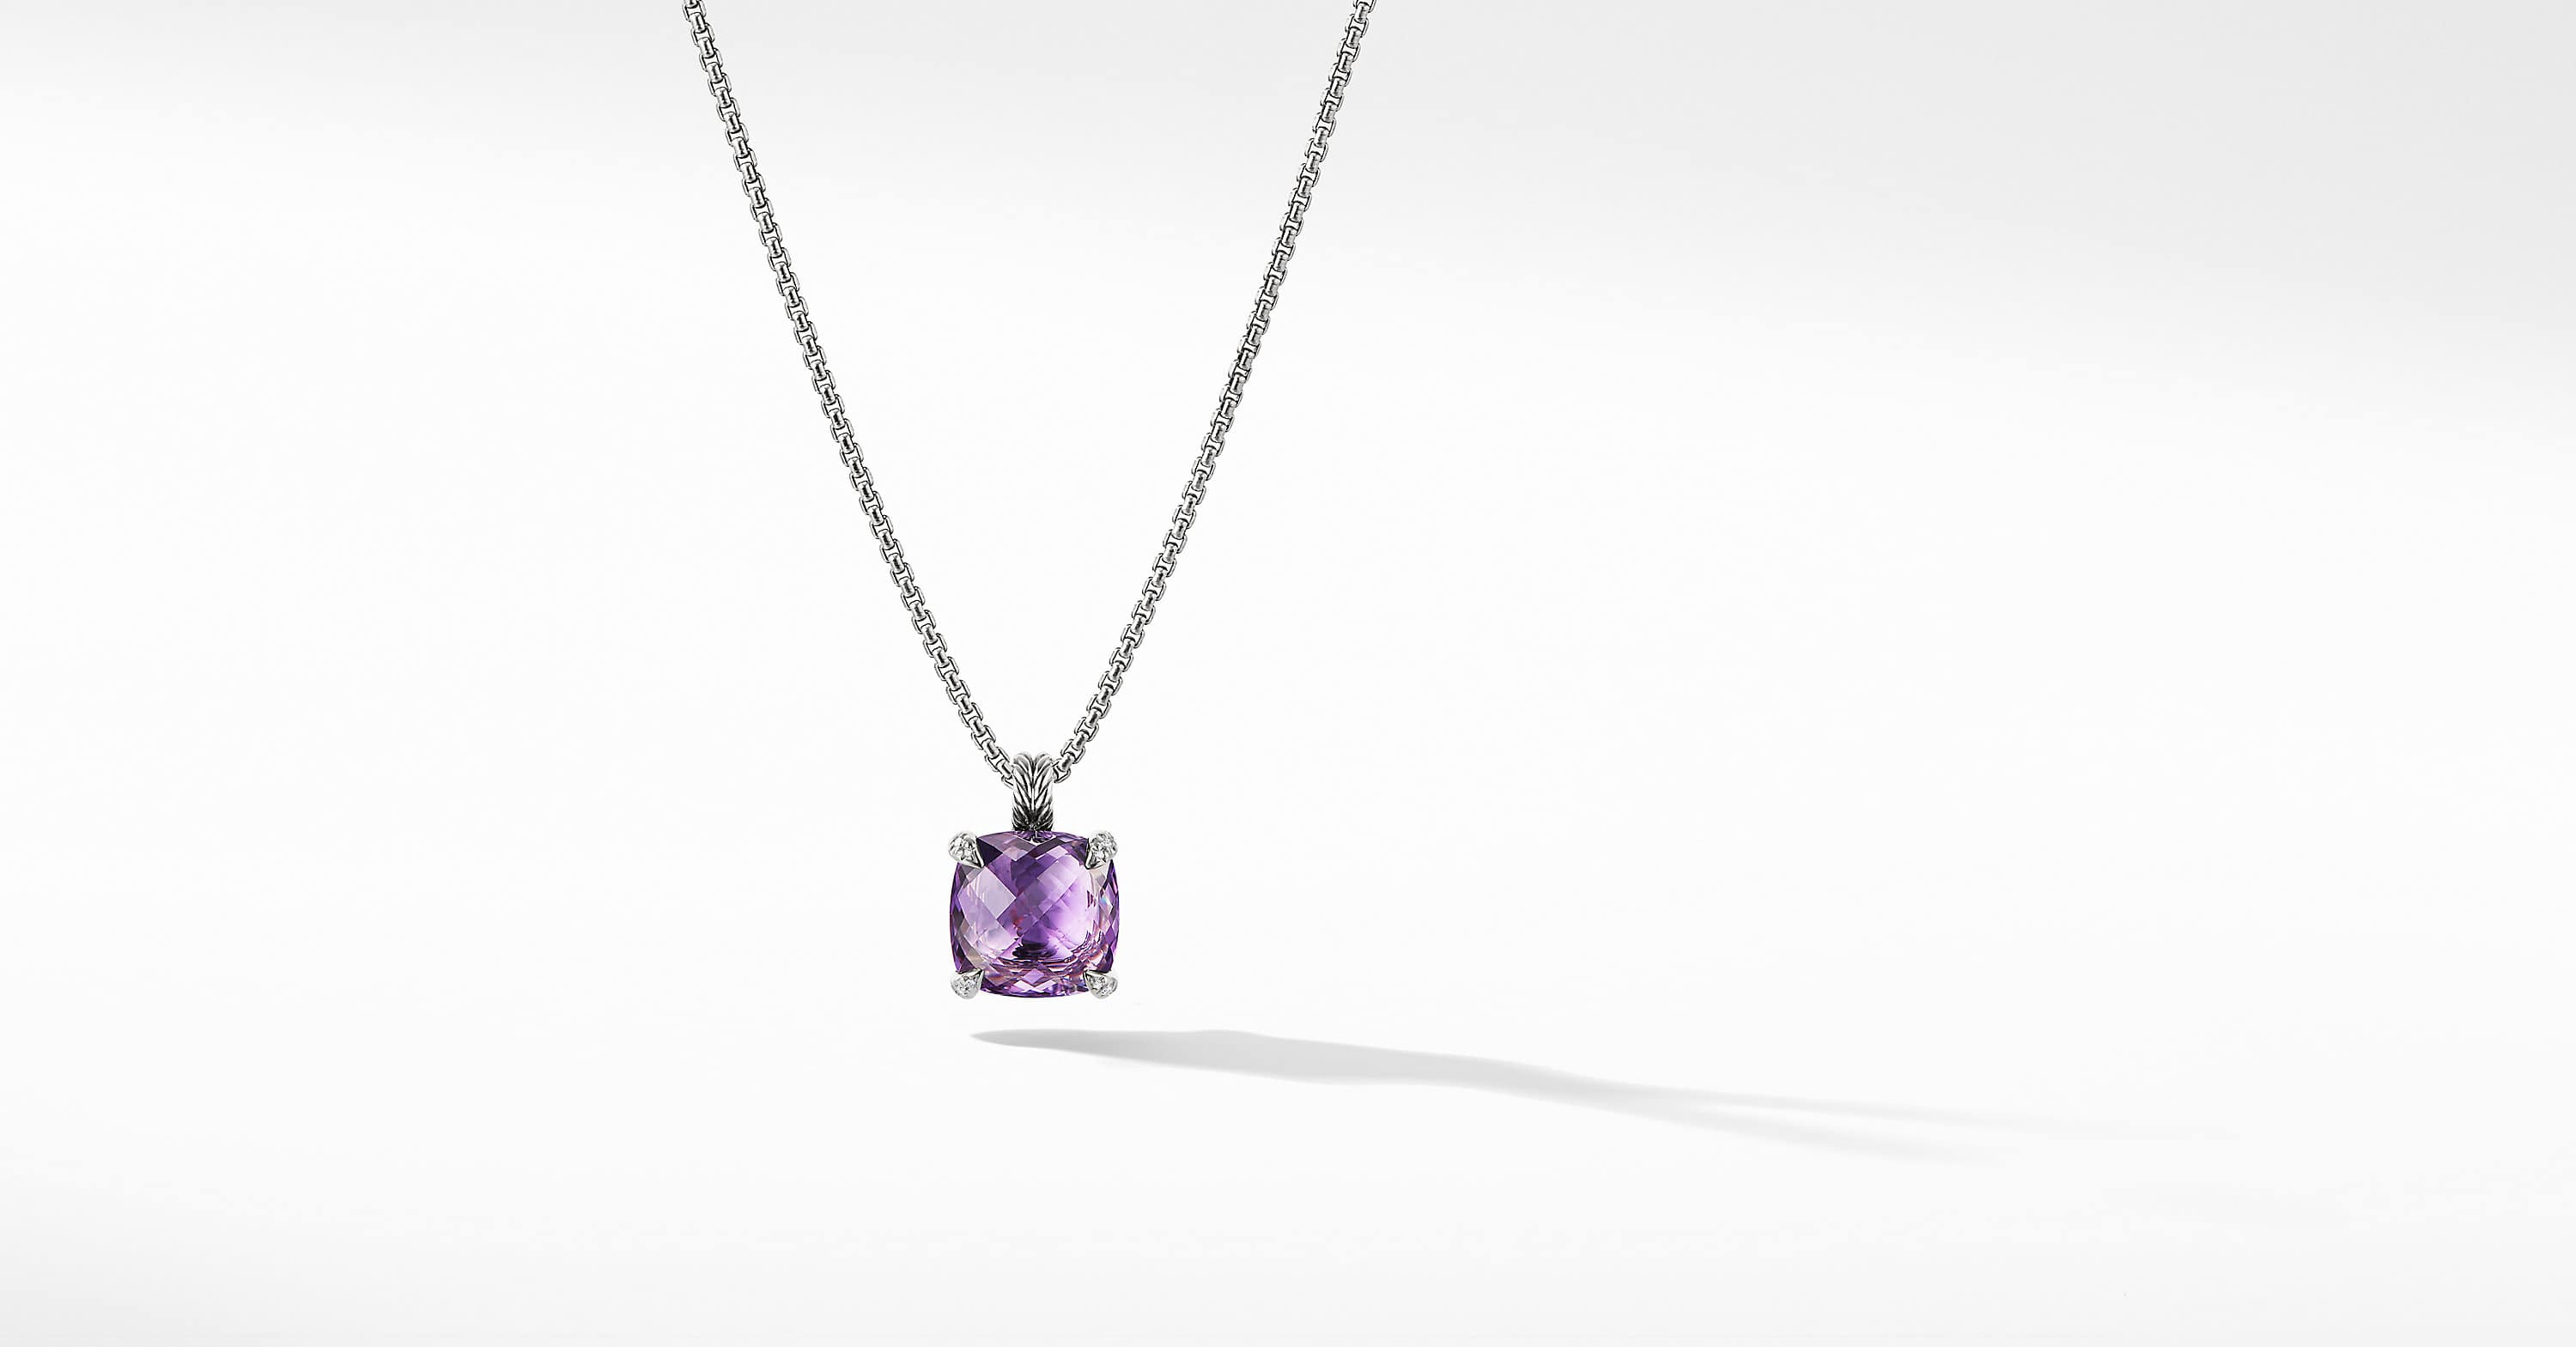 Chatelaine Pendant Necklace with Diamonds, 14mm